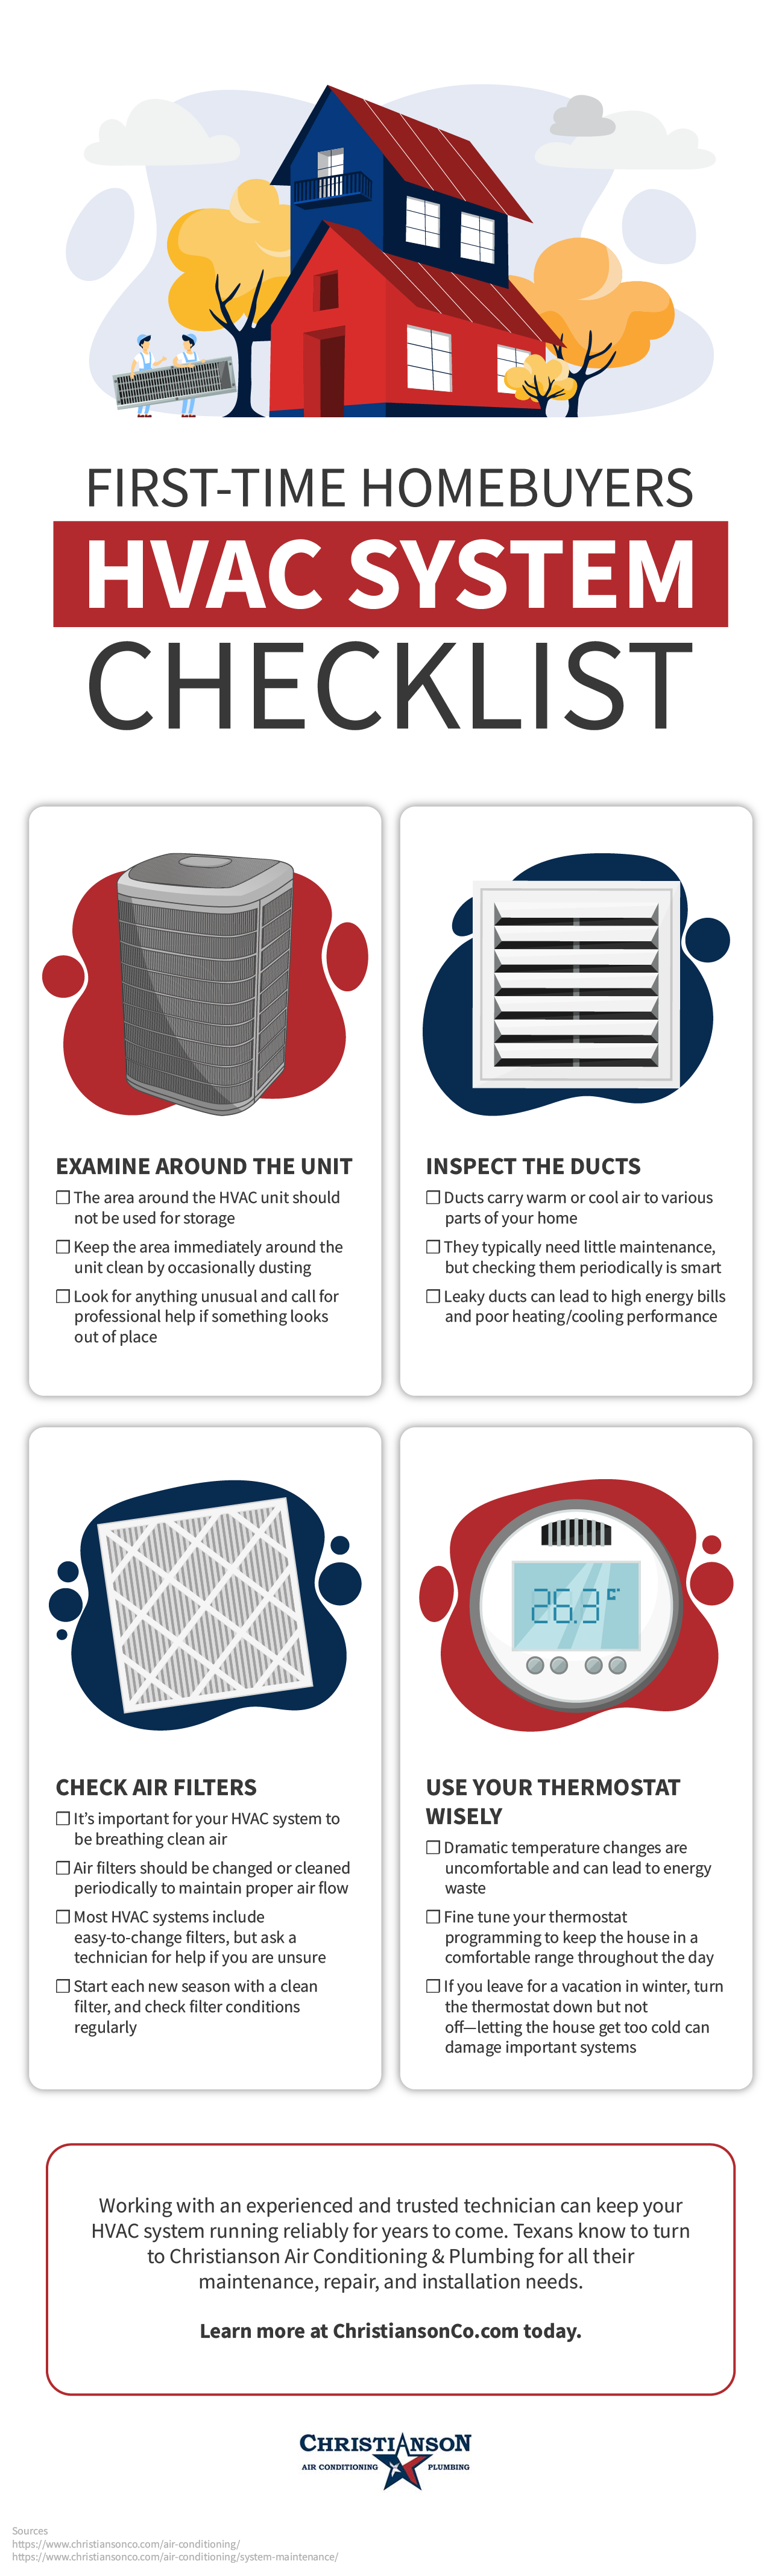 First-Time Homebuyers HVAC System Checklist Infographic